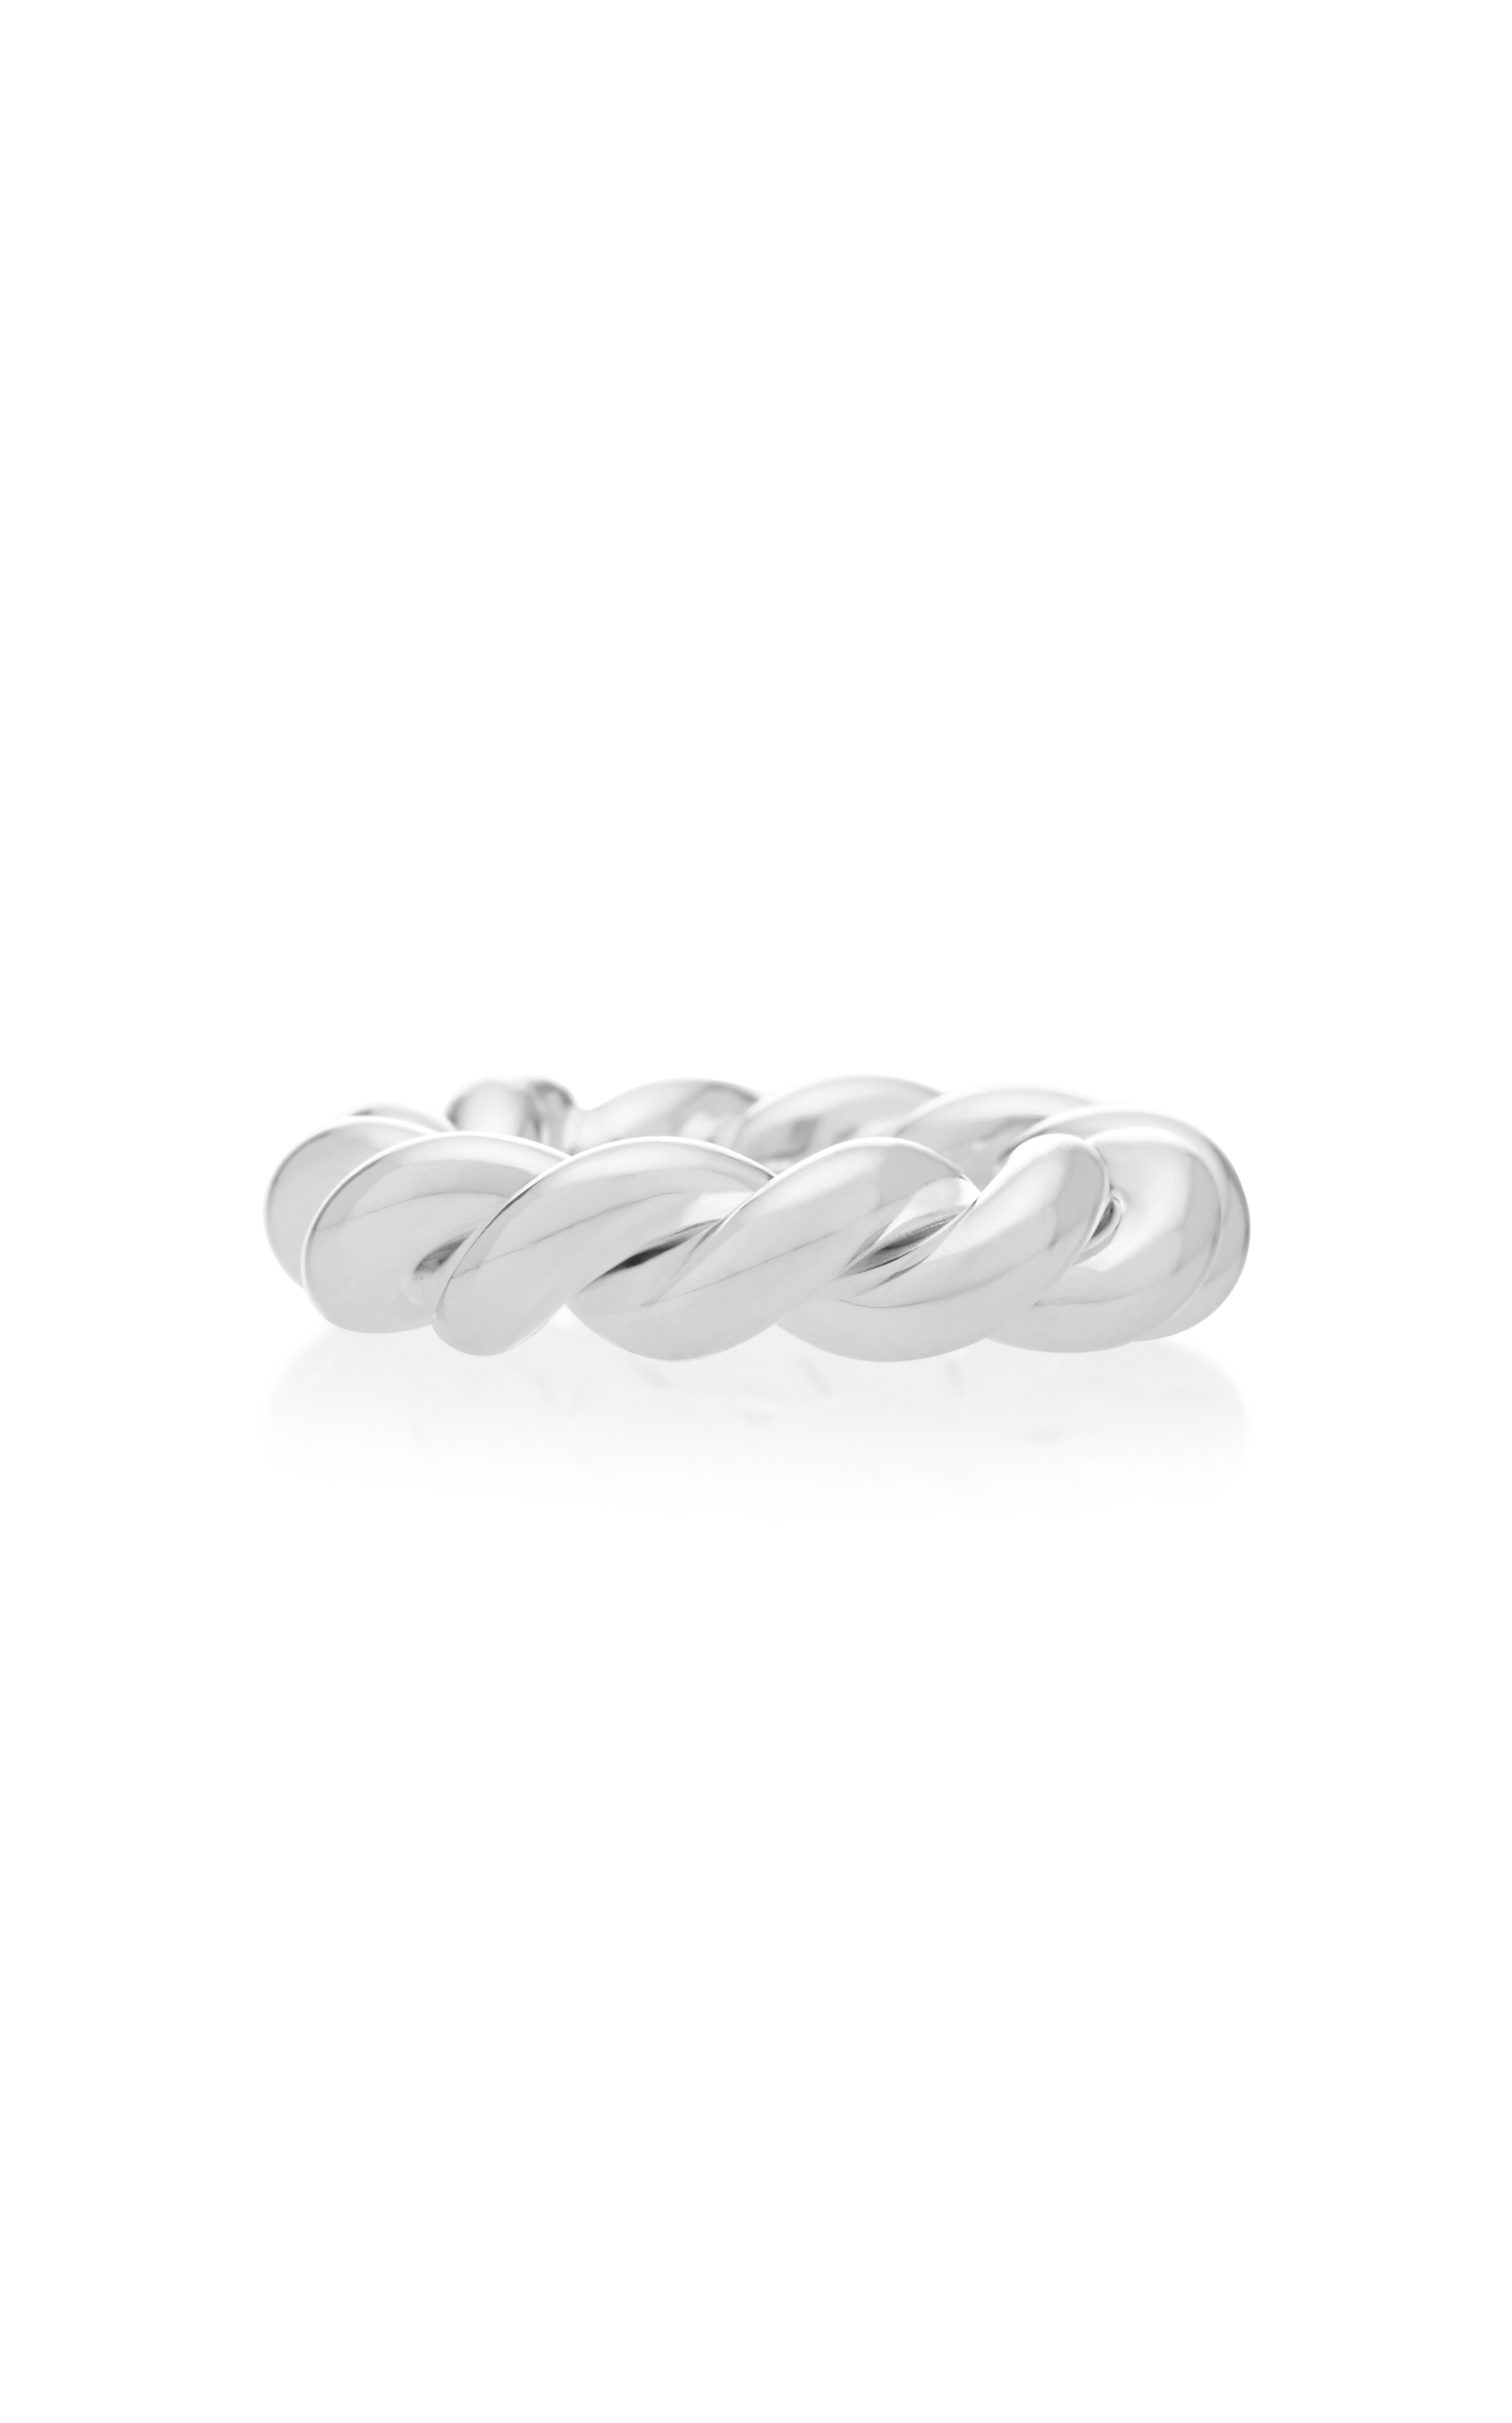 ISABEL LENNSE STERLING SILVER TWISTED RING